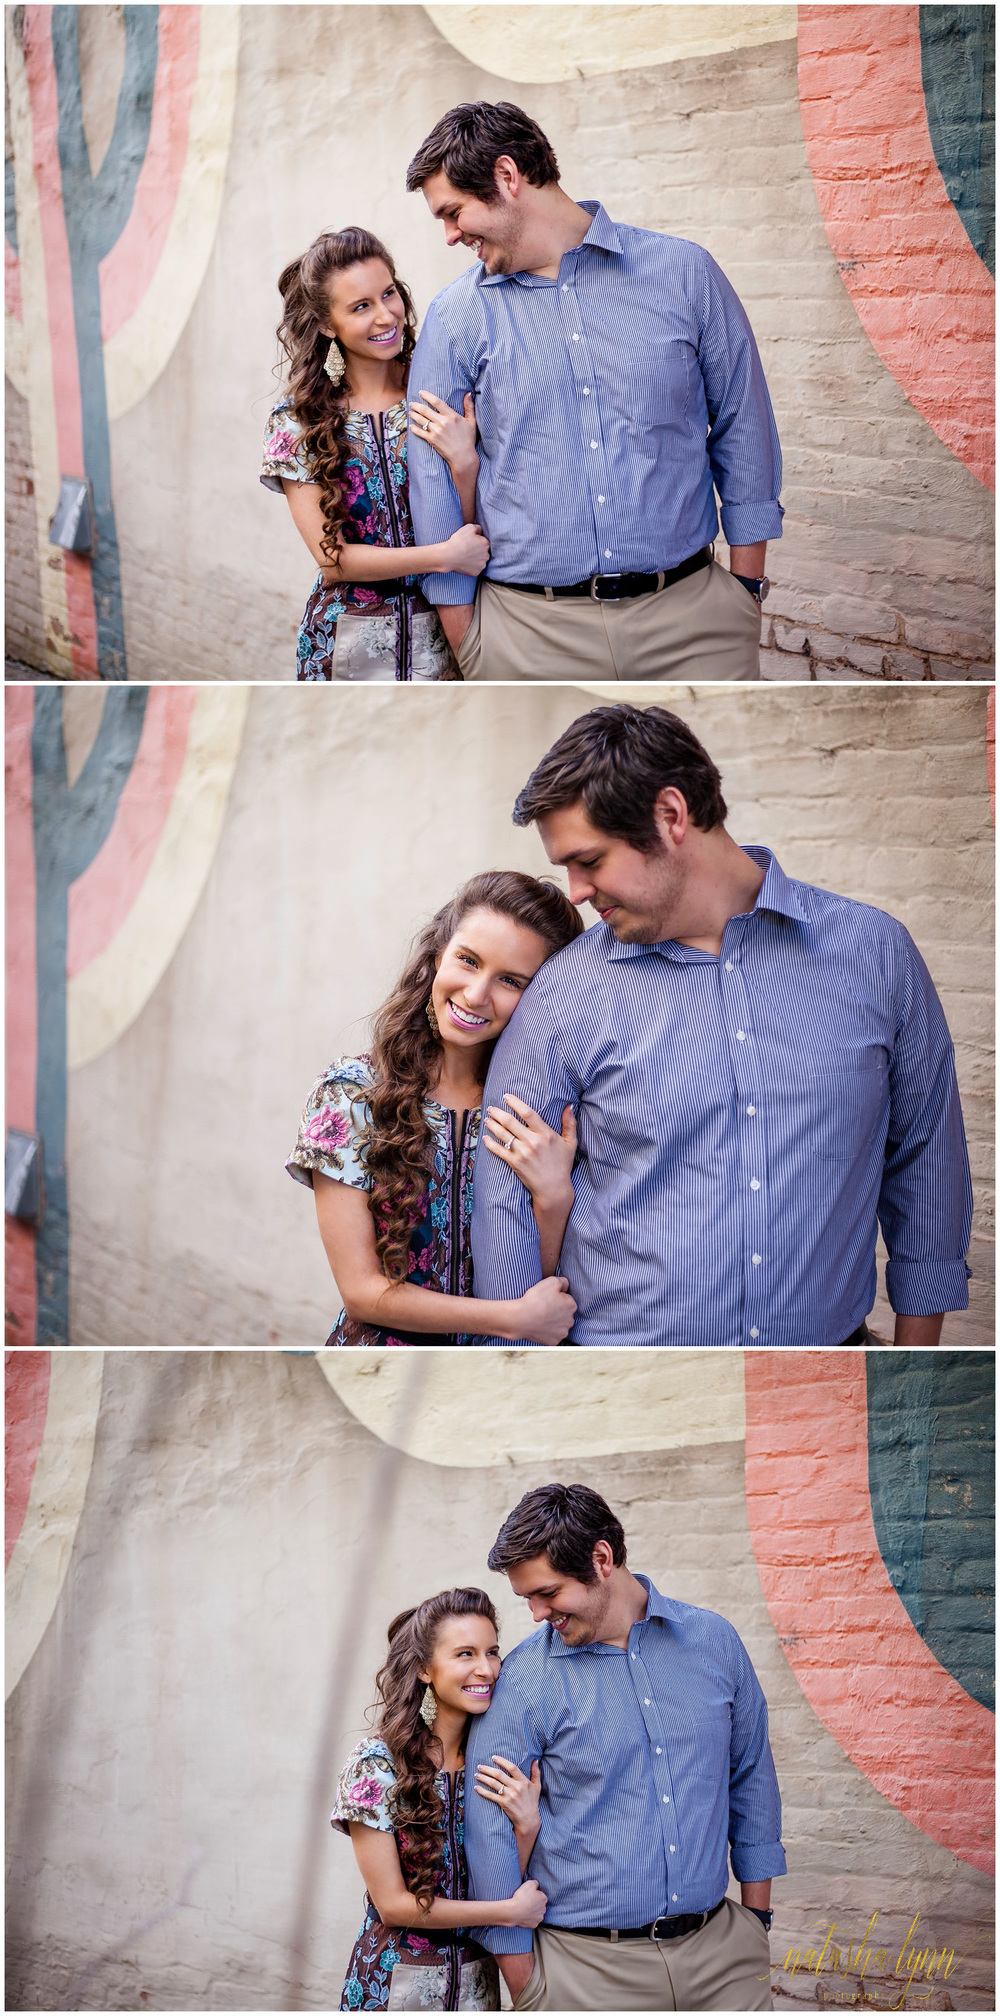 Wilkes+County+Engagement+Photographer_2.jpg